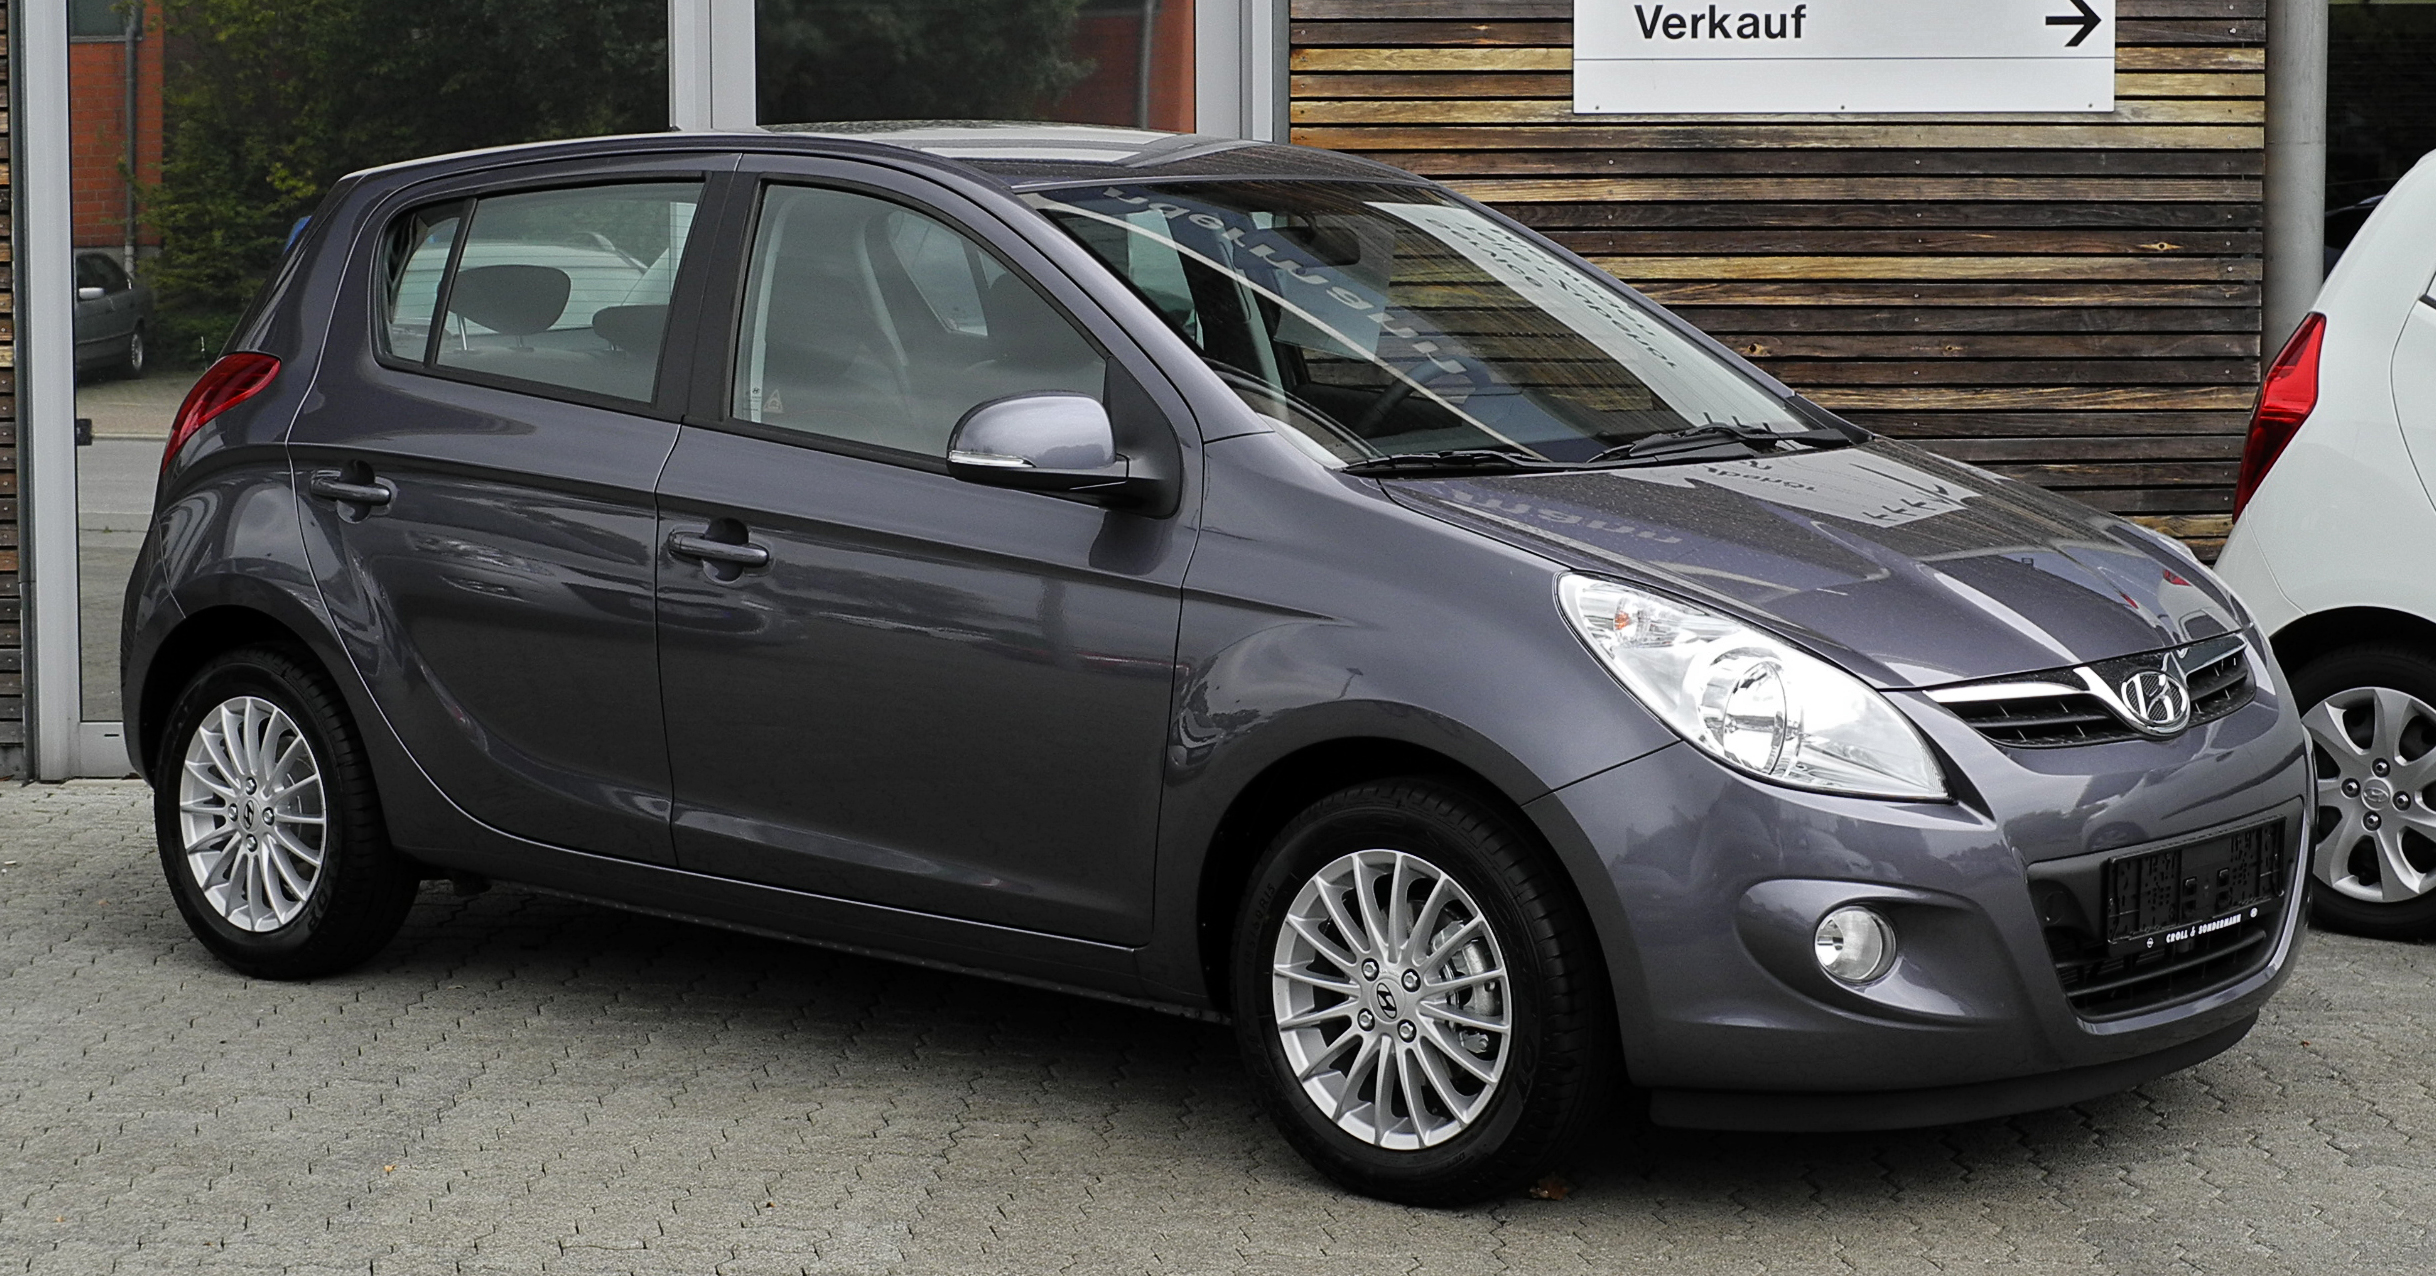 2011 Hyundai I20 Pictures Information And Specs Auto